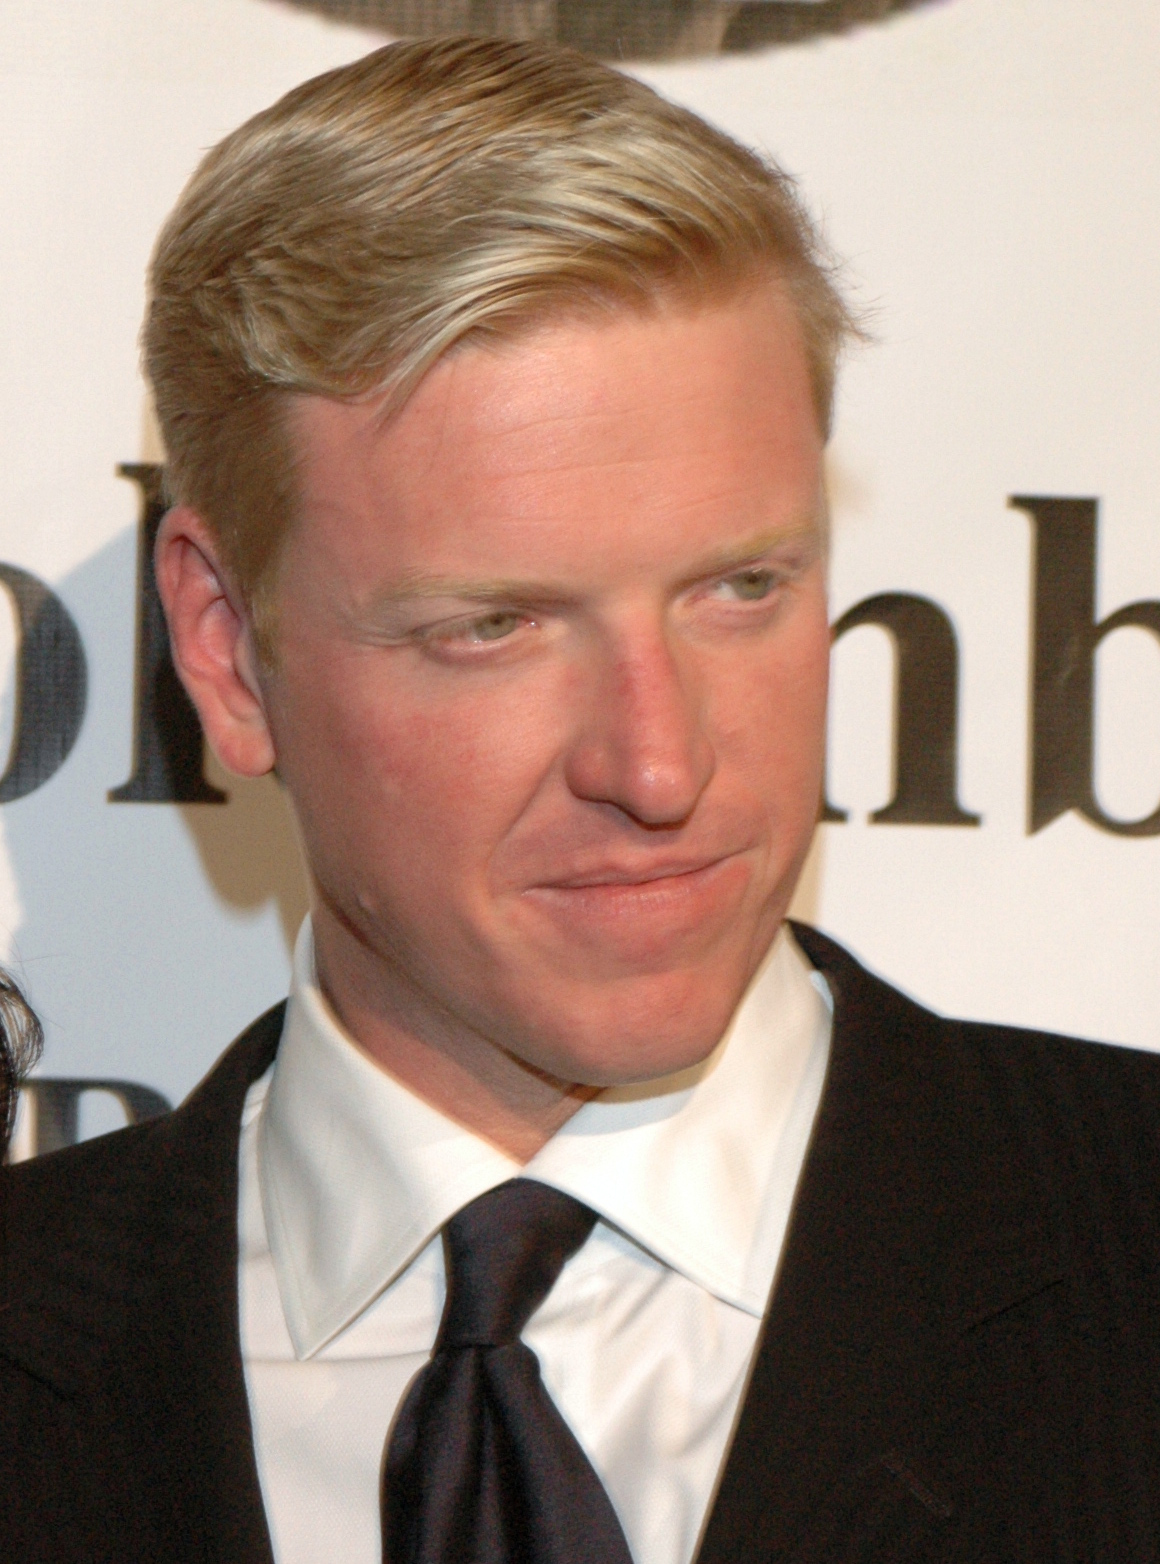 jake busey contact - photo #2